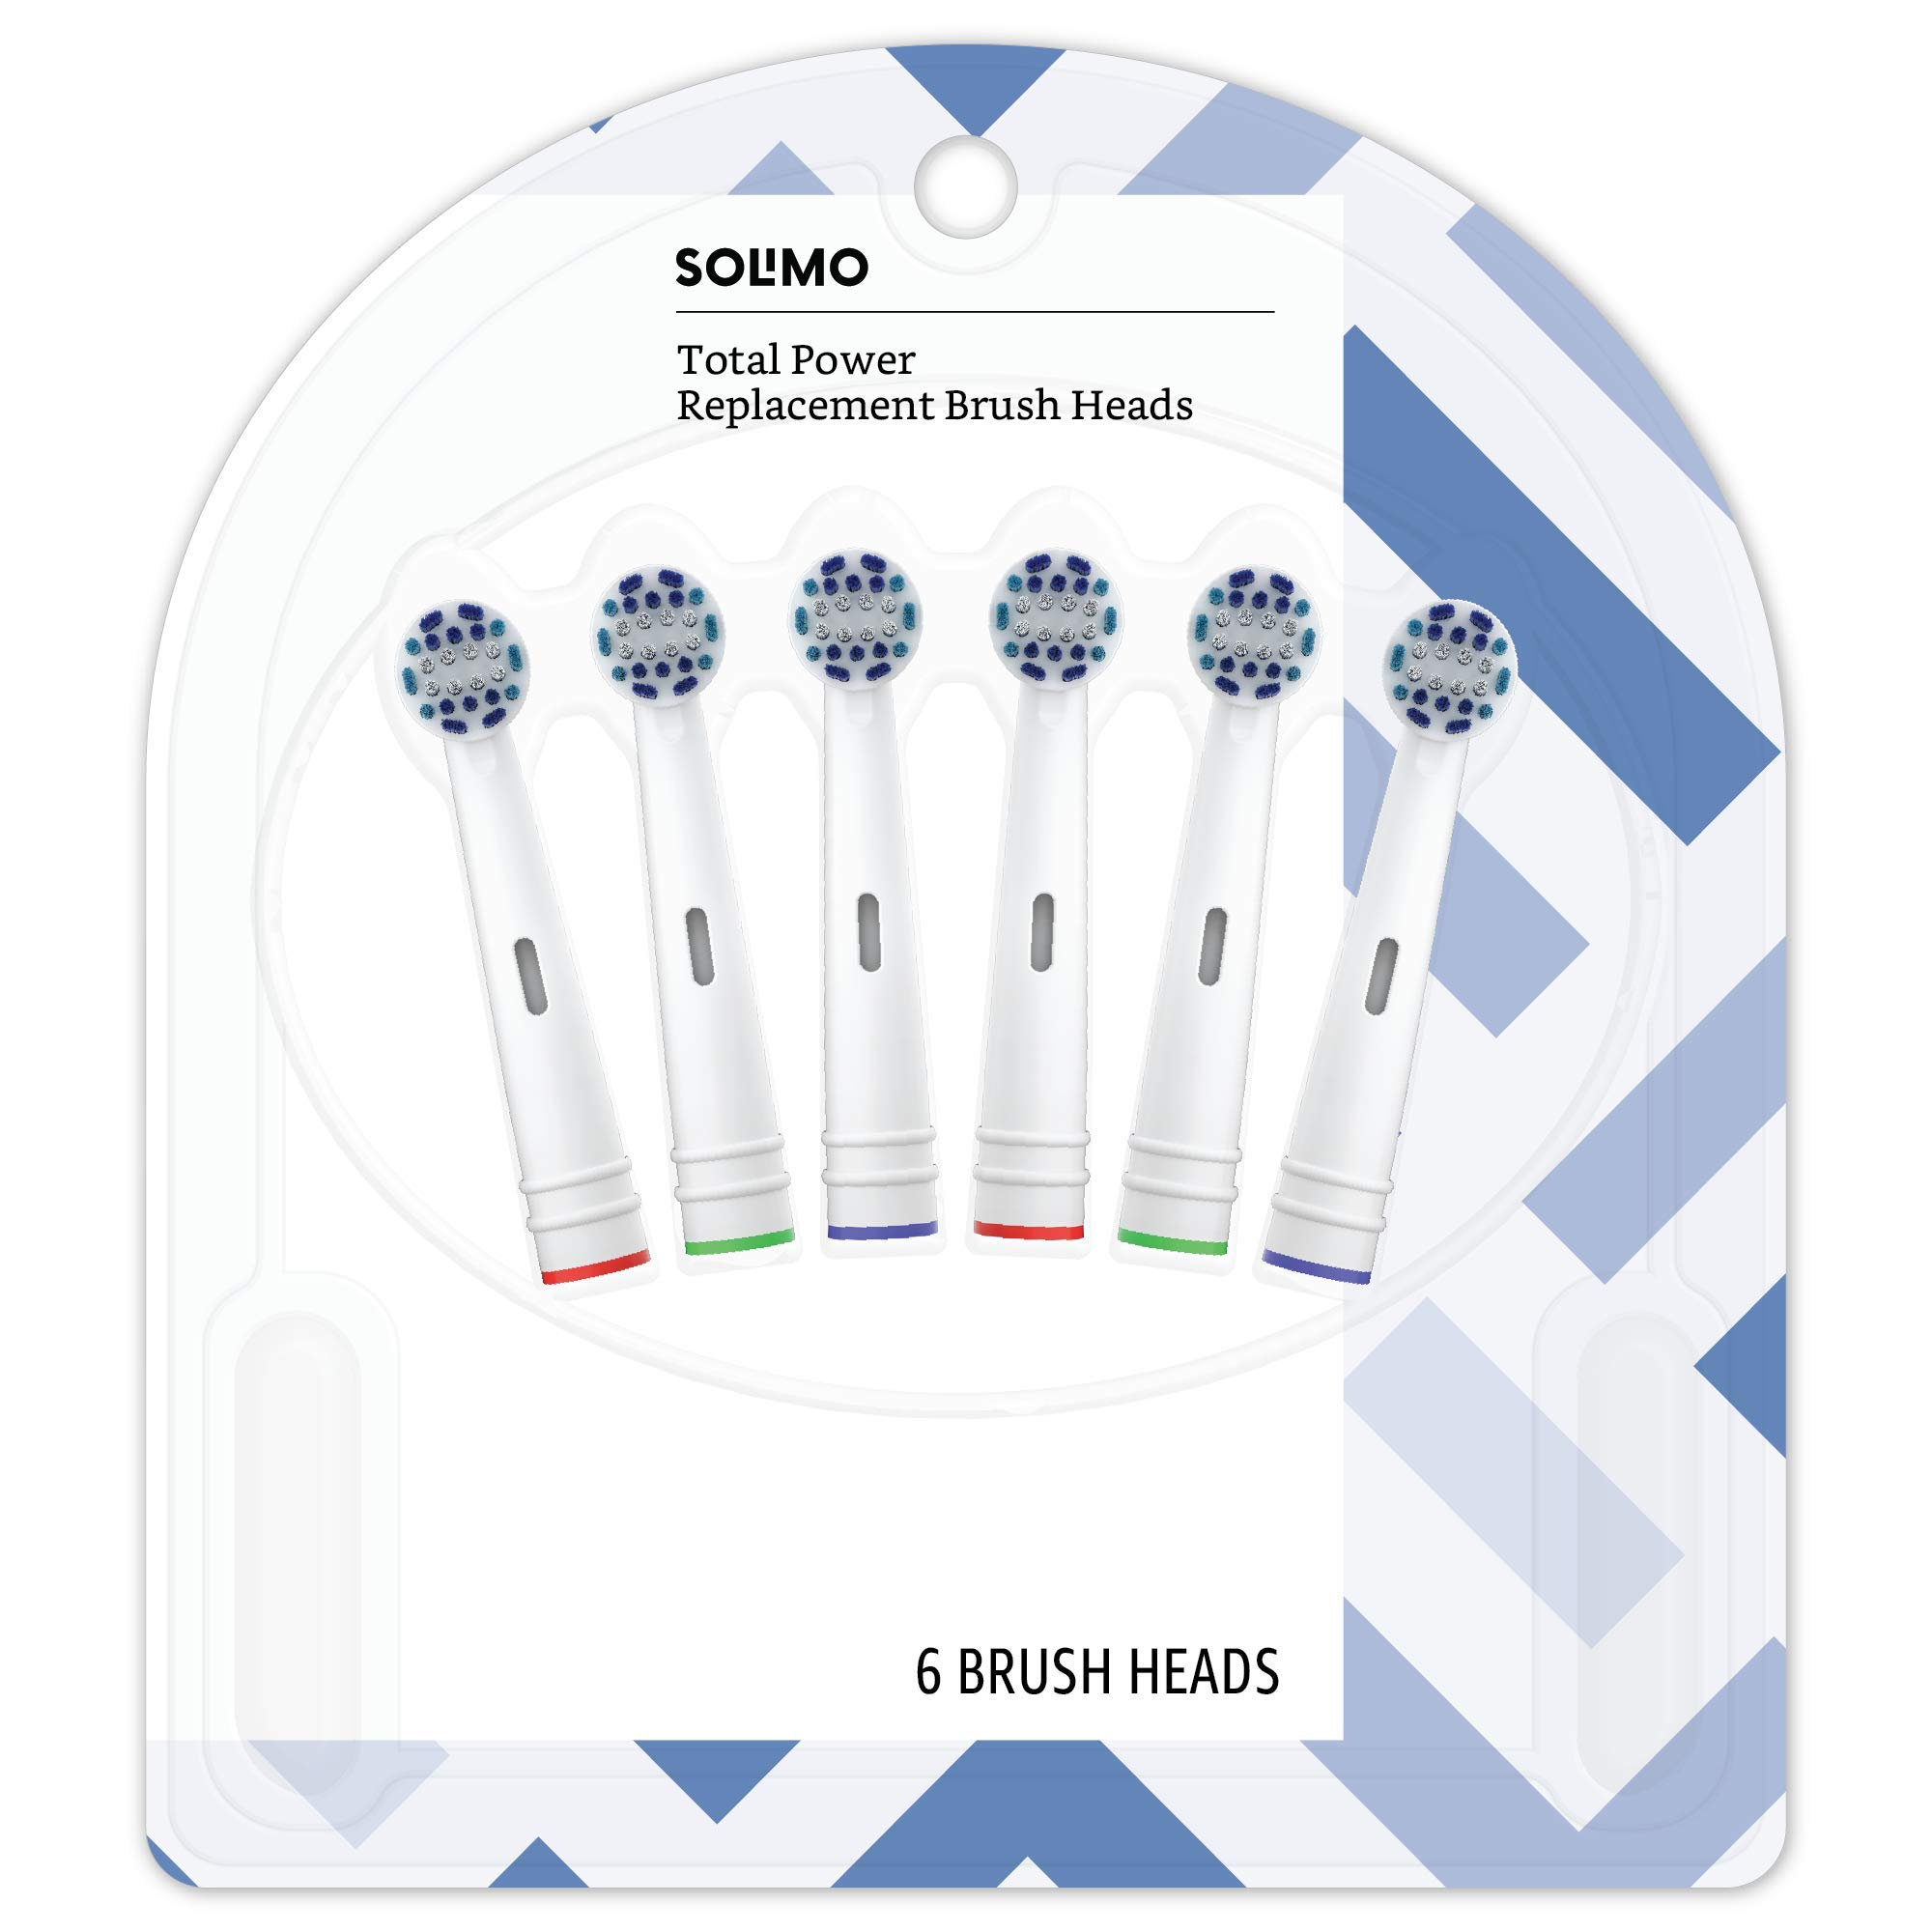 Amazon Brand - Solimo Total Power Replacement Brush Heads, 6 Count (Fits Most Oral-B Electric Toothbrushes)